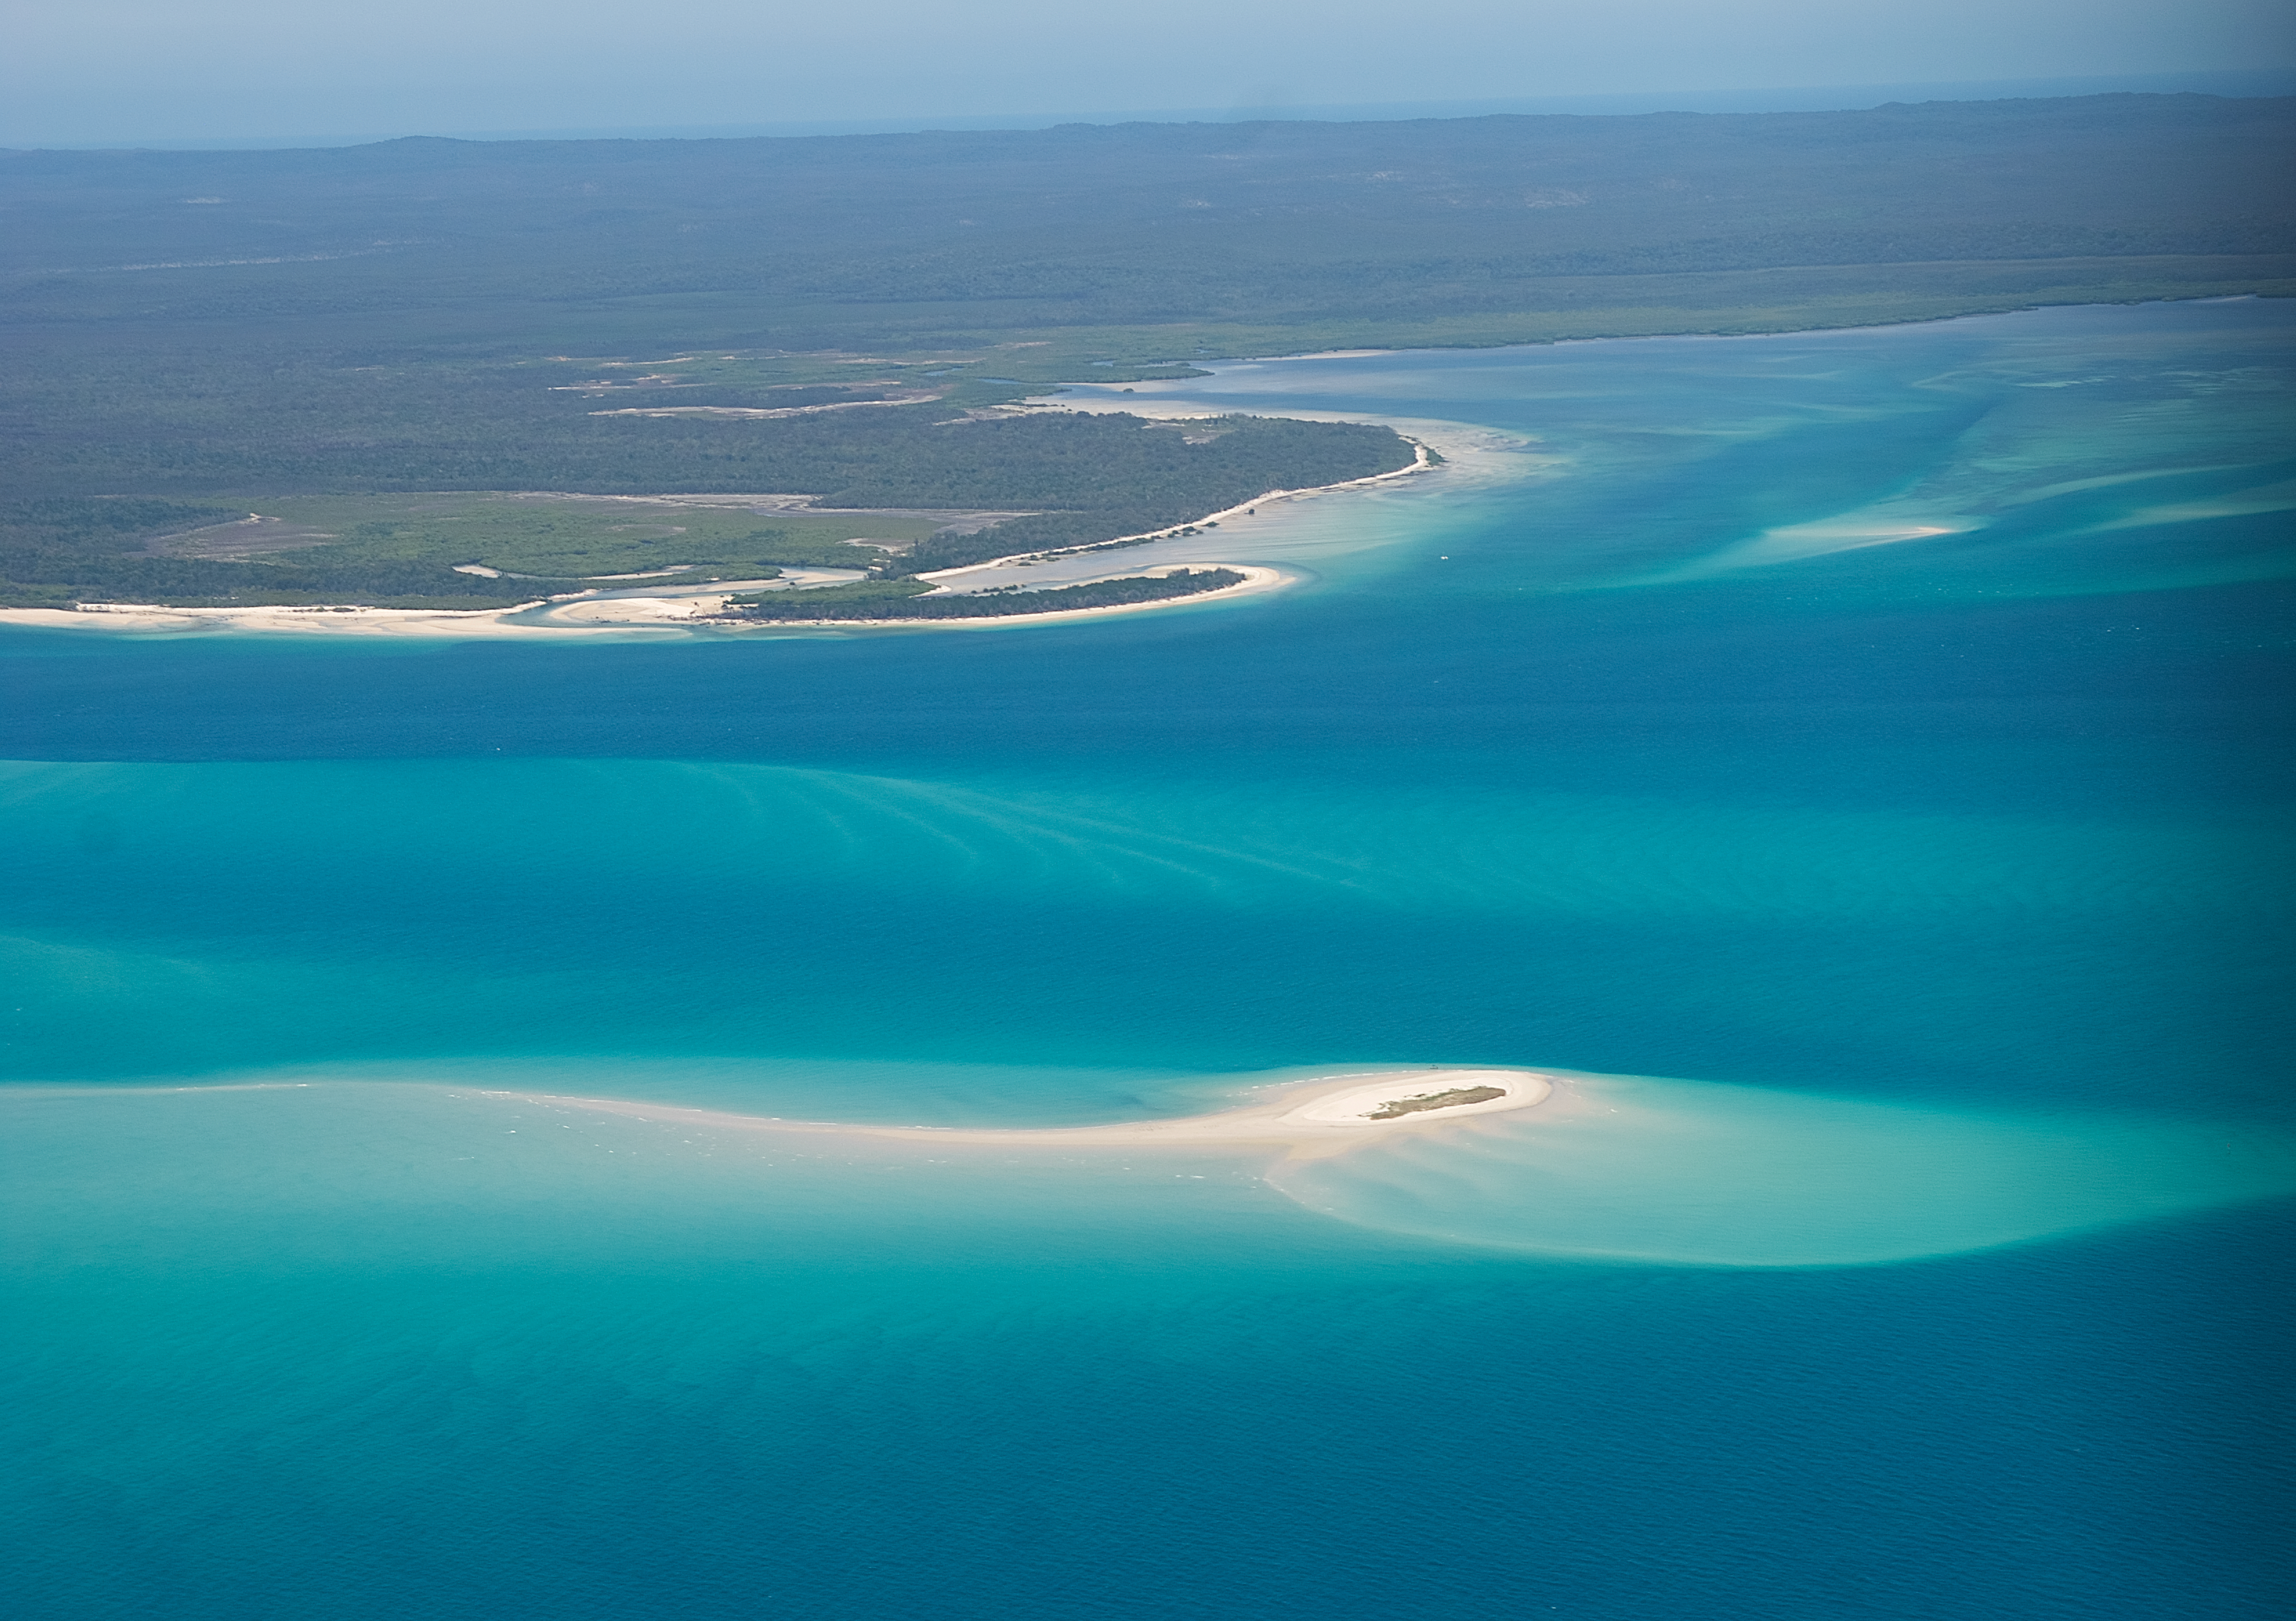 Looking back southward as we past by Fraser Island we also see small islands and sand banks and blue waters